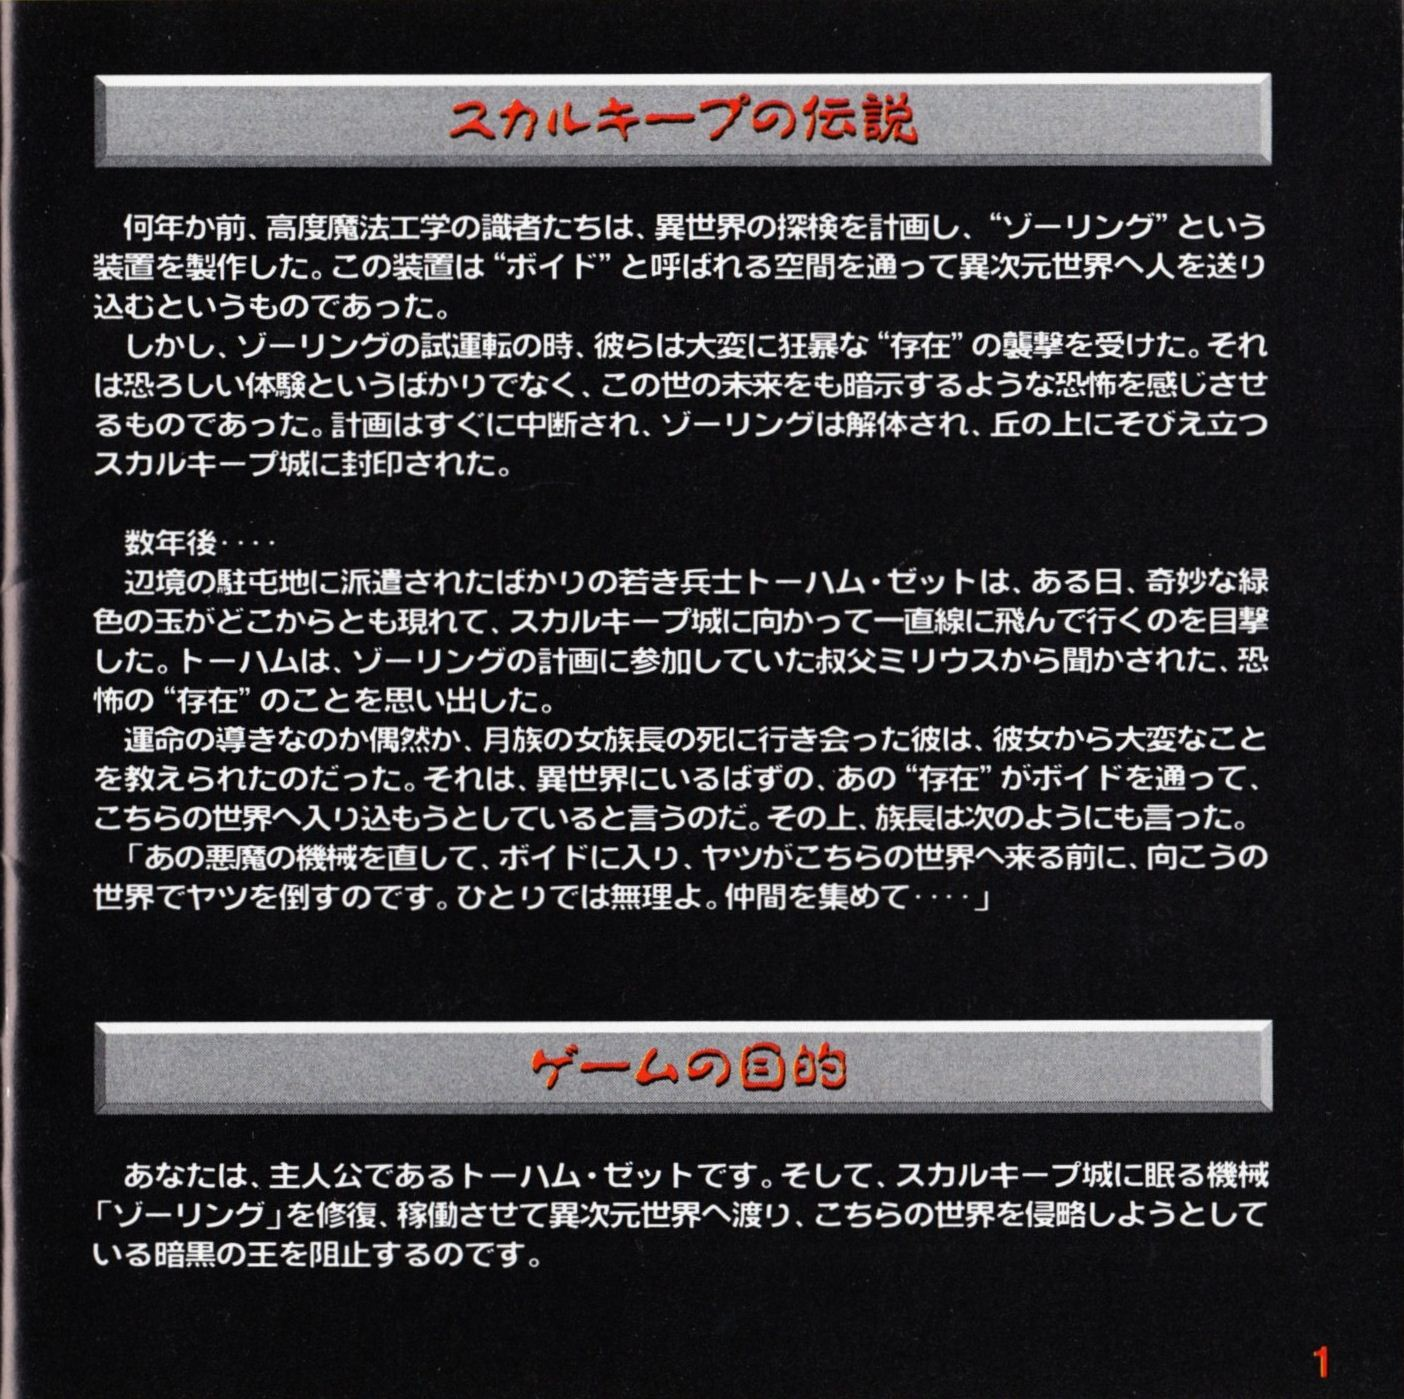 Game - Dungeon Master II - JP - Mega CD - Booklet - Page 003 - Scan